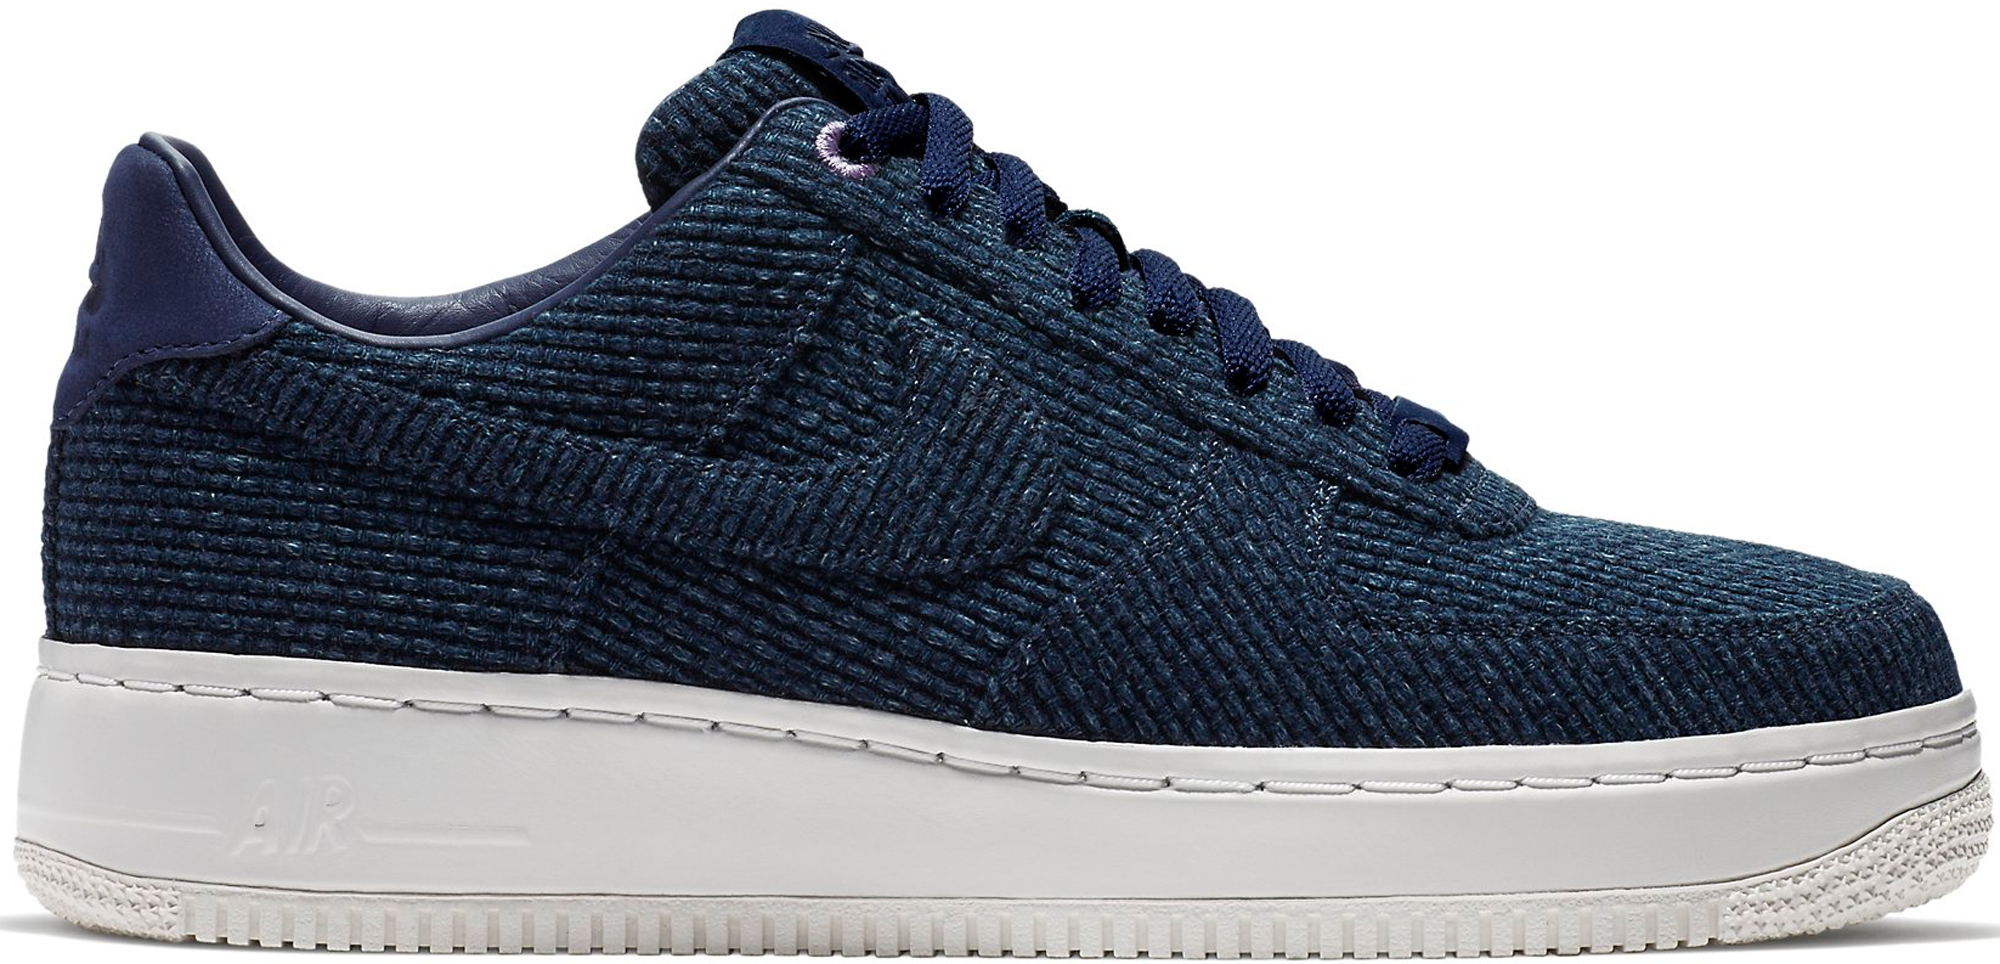 Nike Air Force 1 Low Aizome Navy StockX News